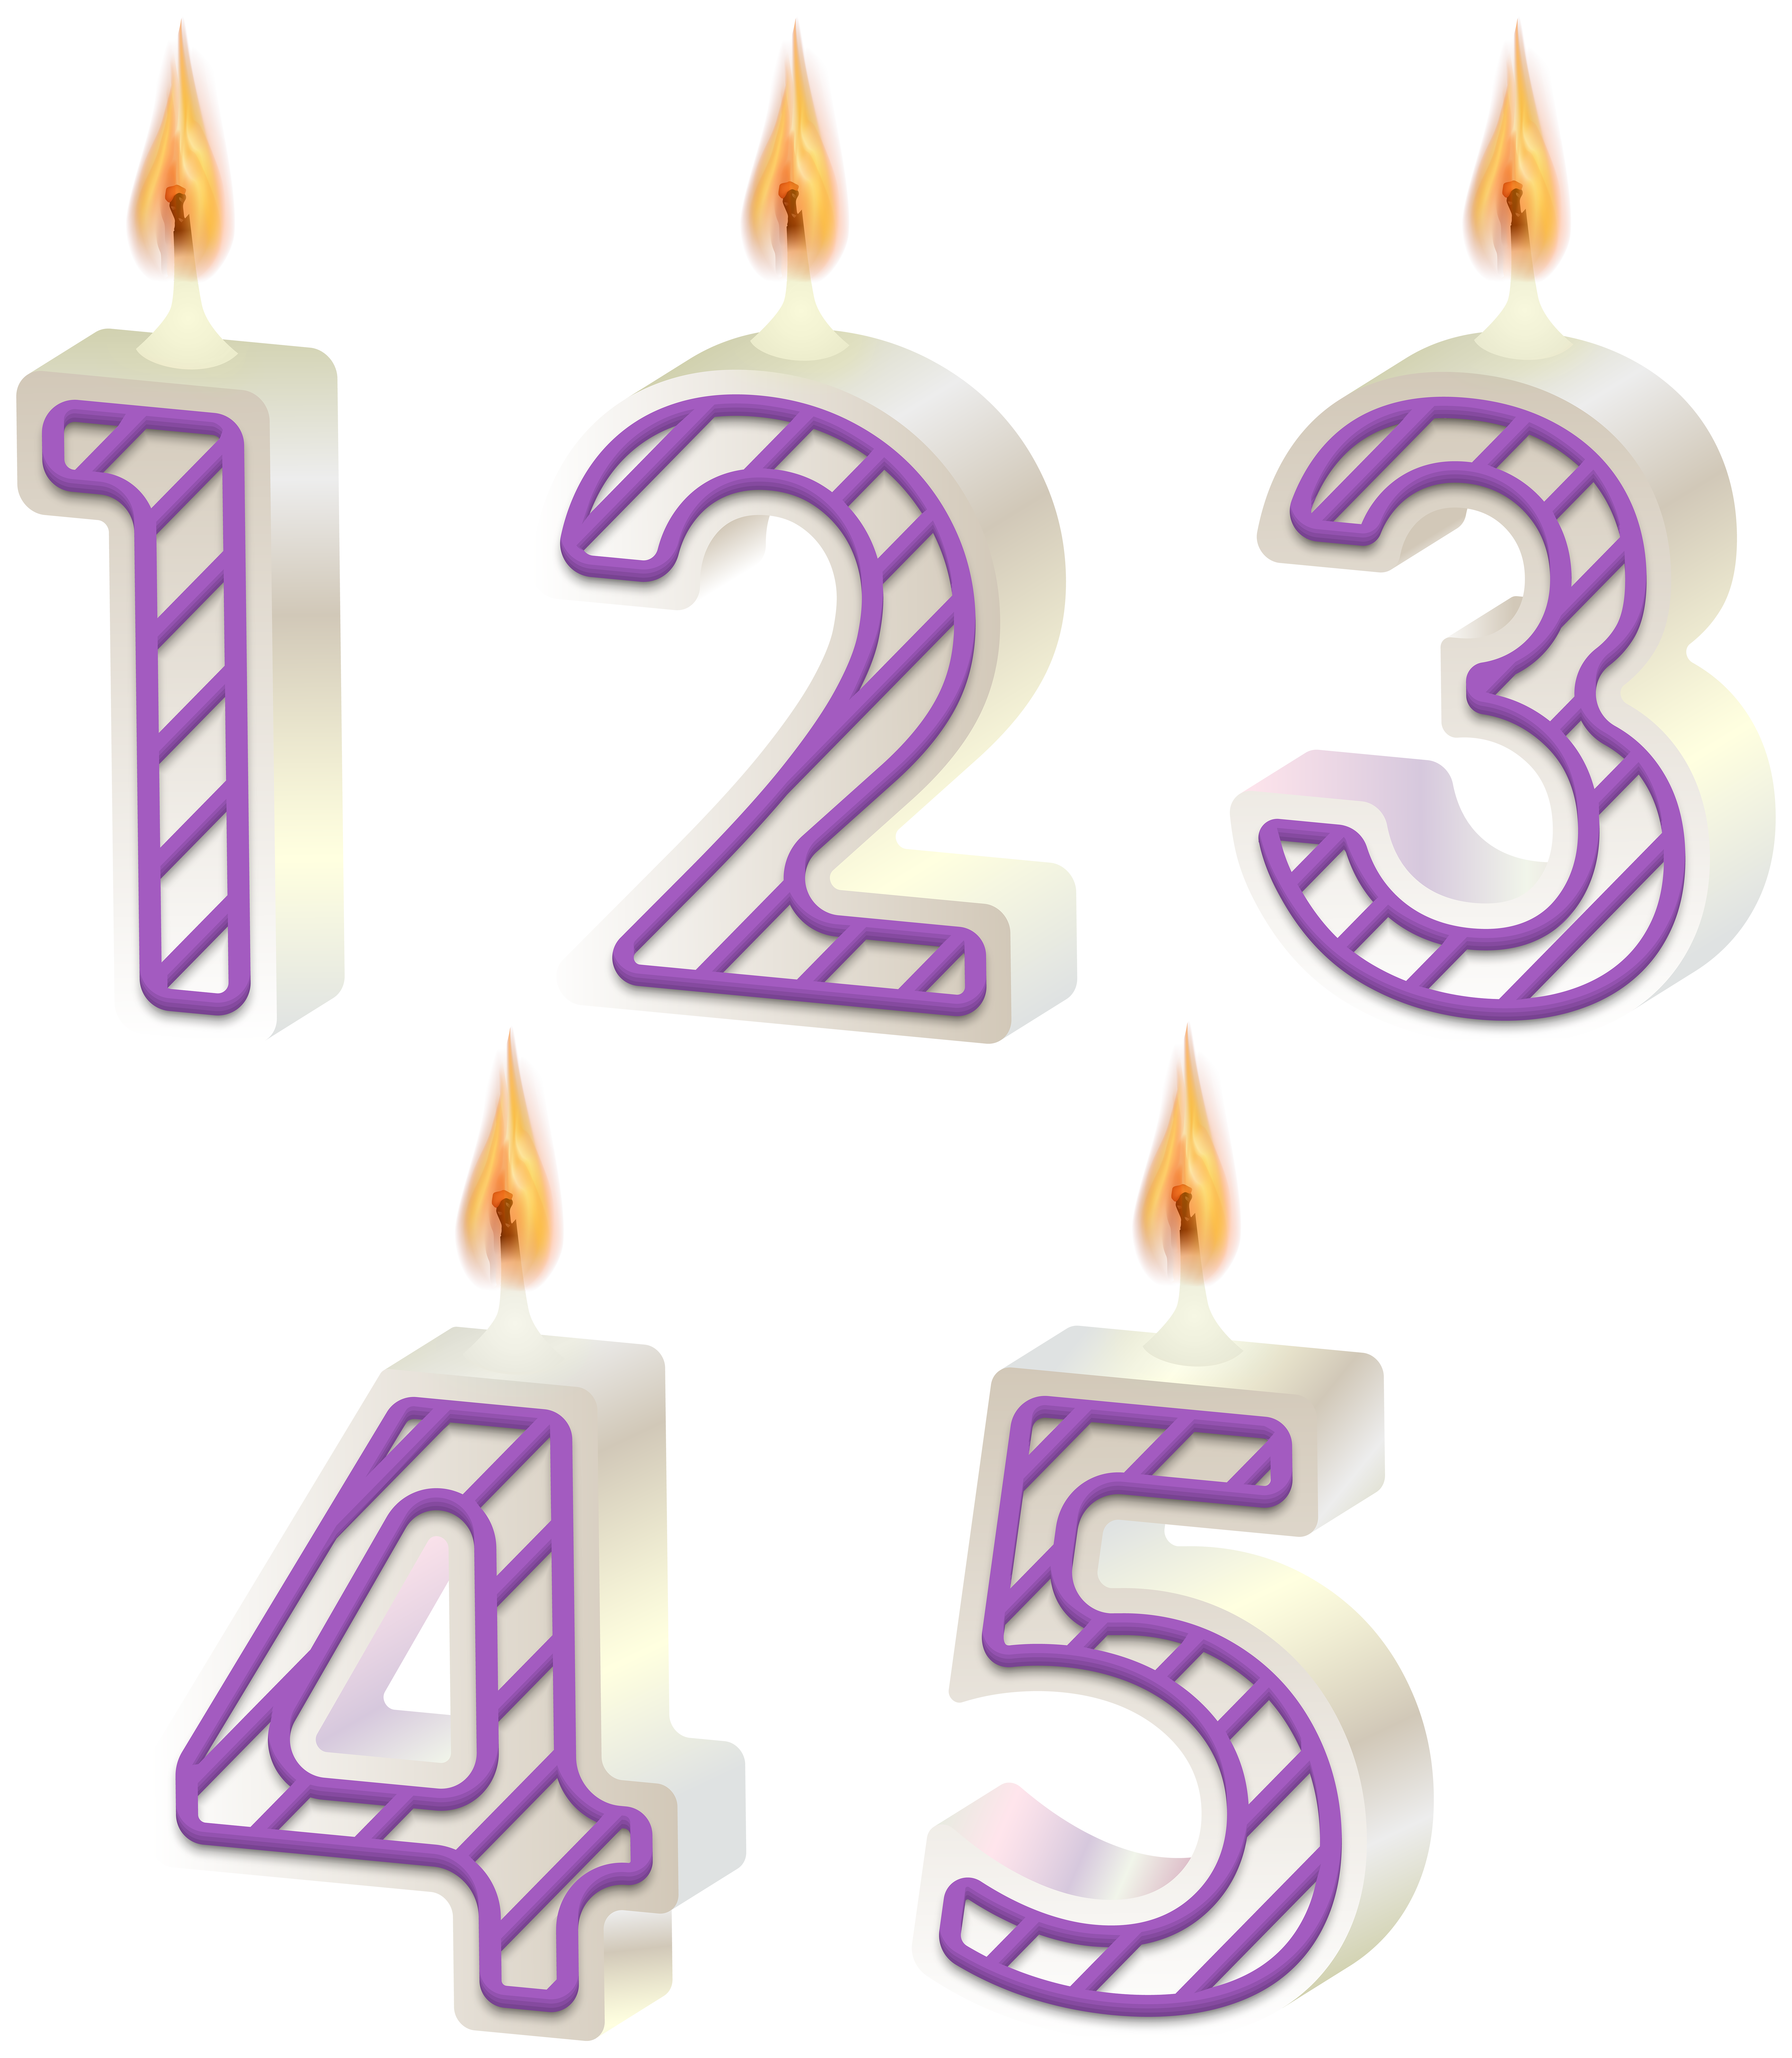 Part one clipart picture freeuse library Birthday Candles Part One Transparent Image | Gallery ... picture freeuse library